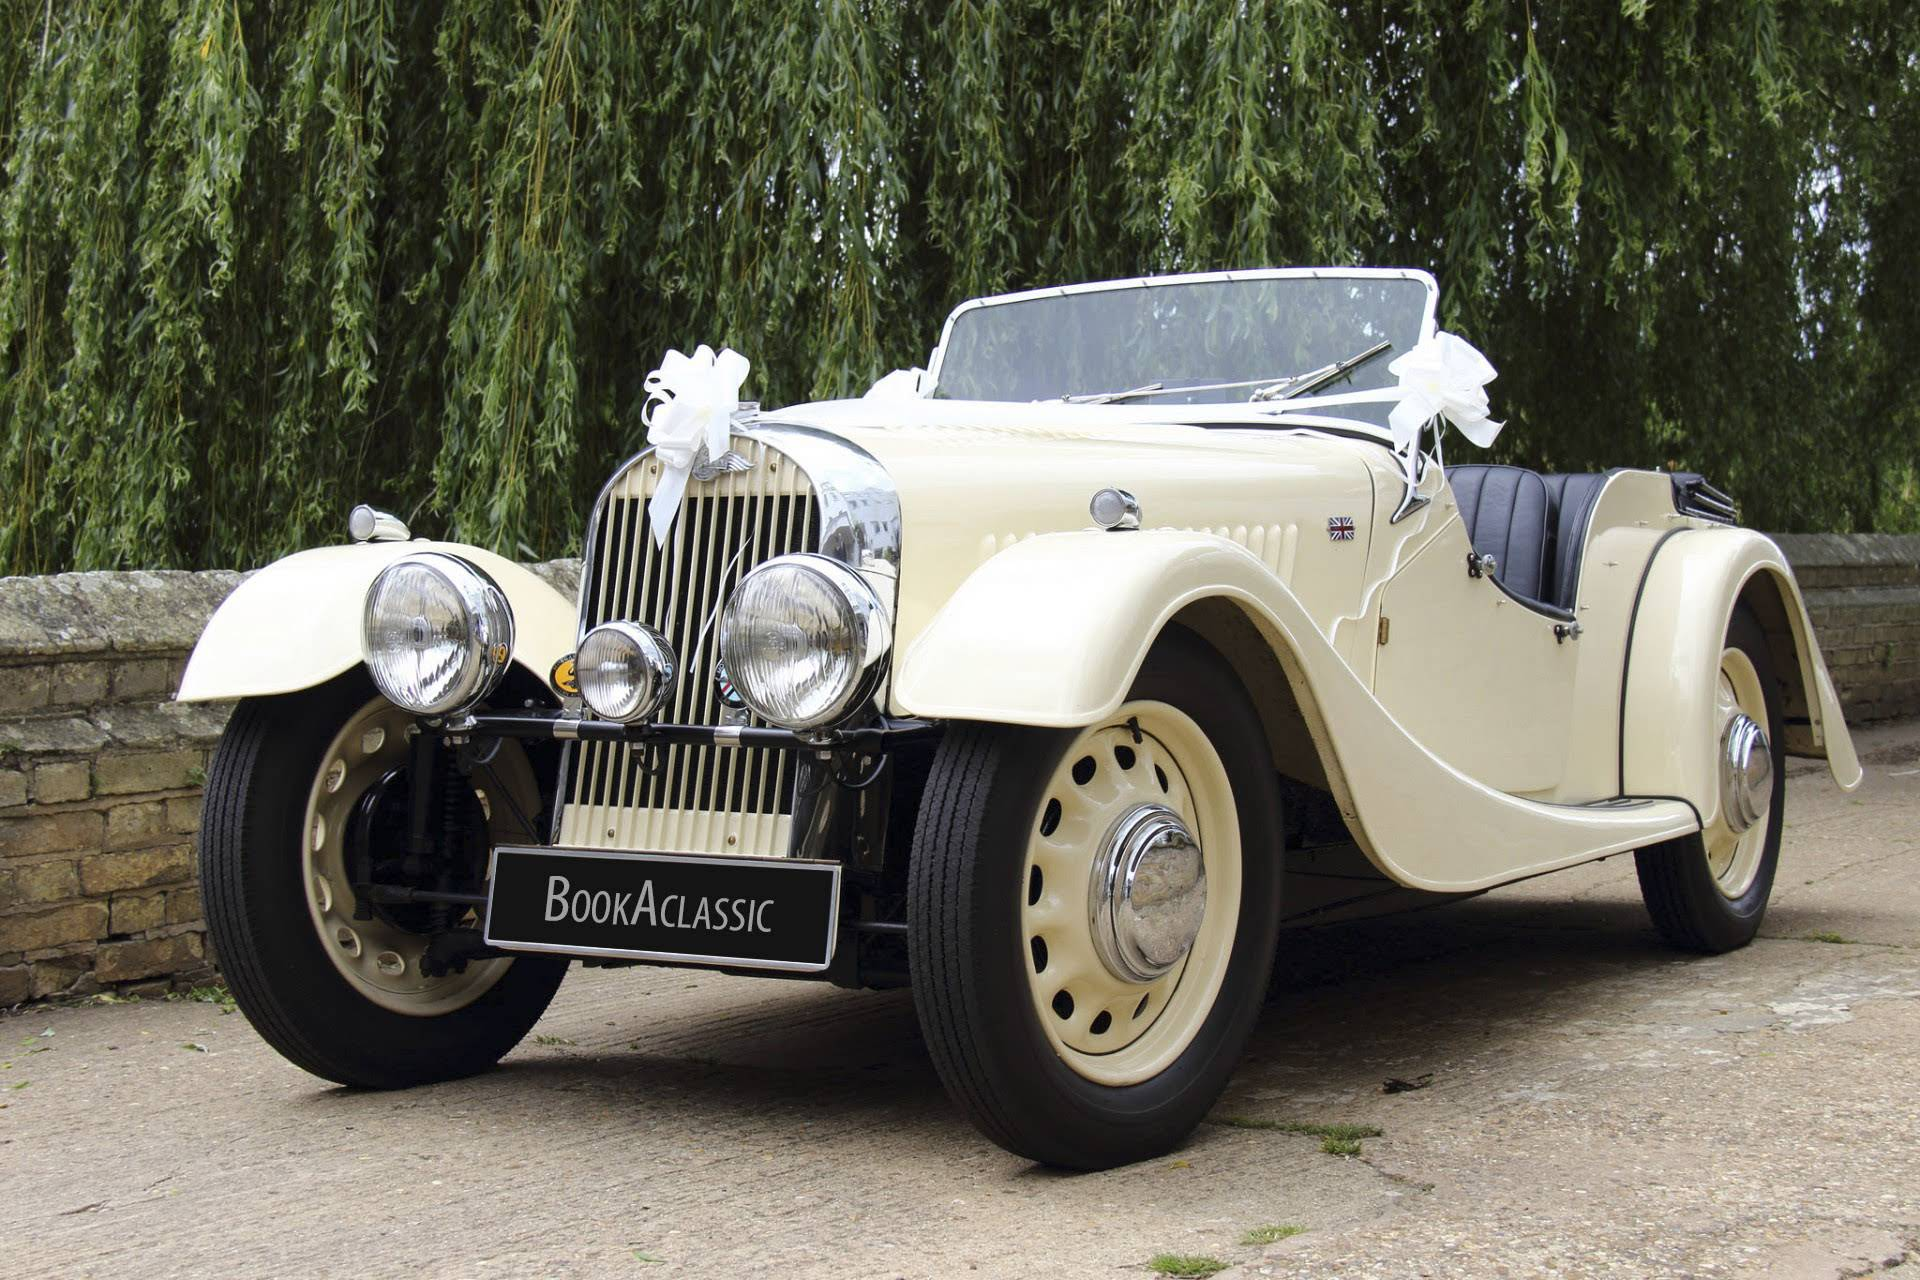 Vintage Wedding Cars - BookAclassic